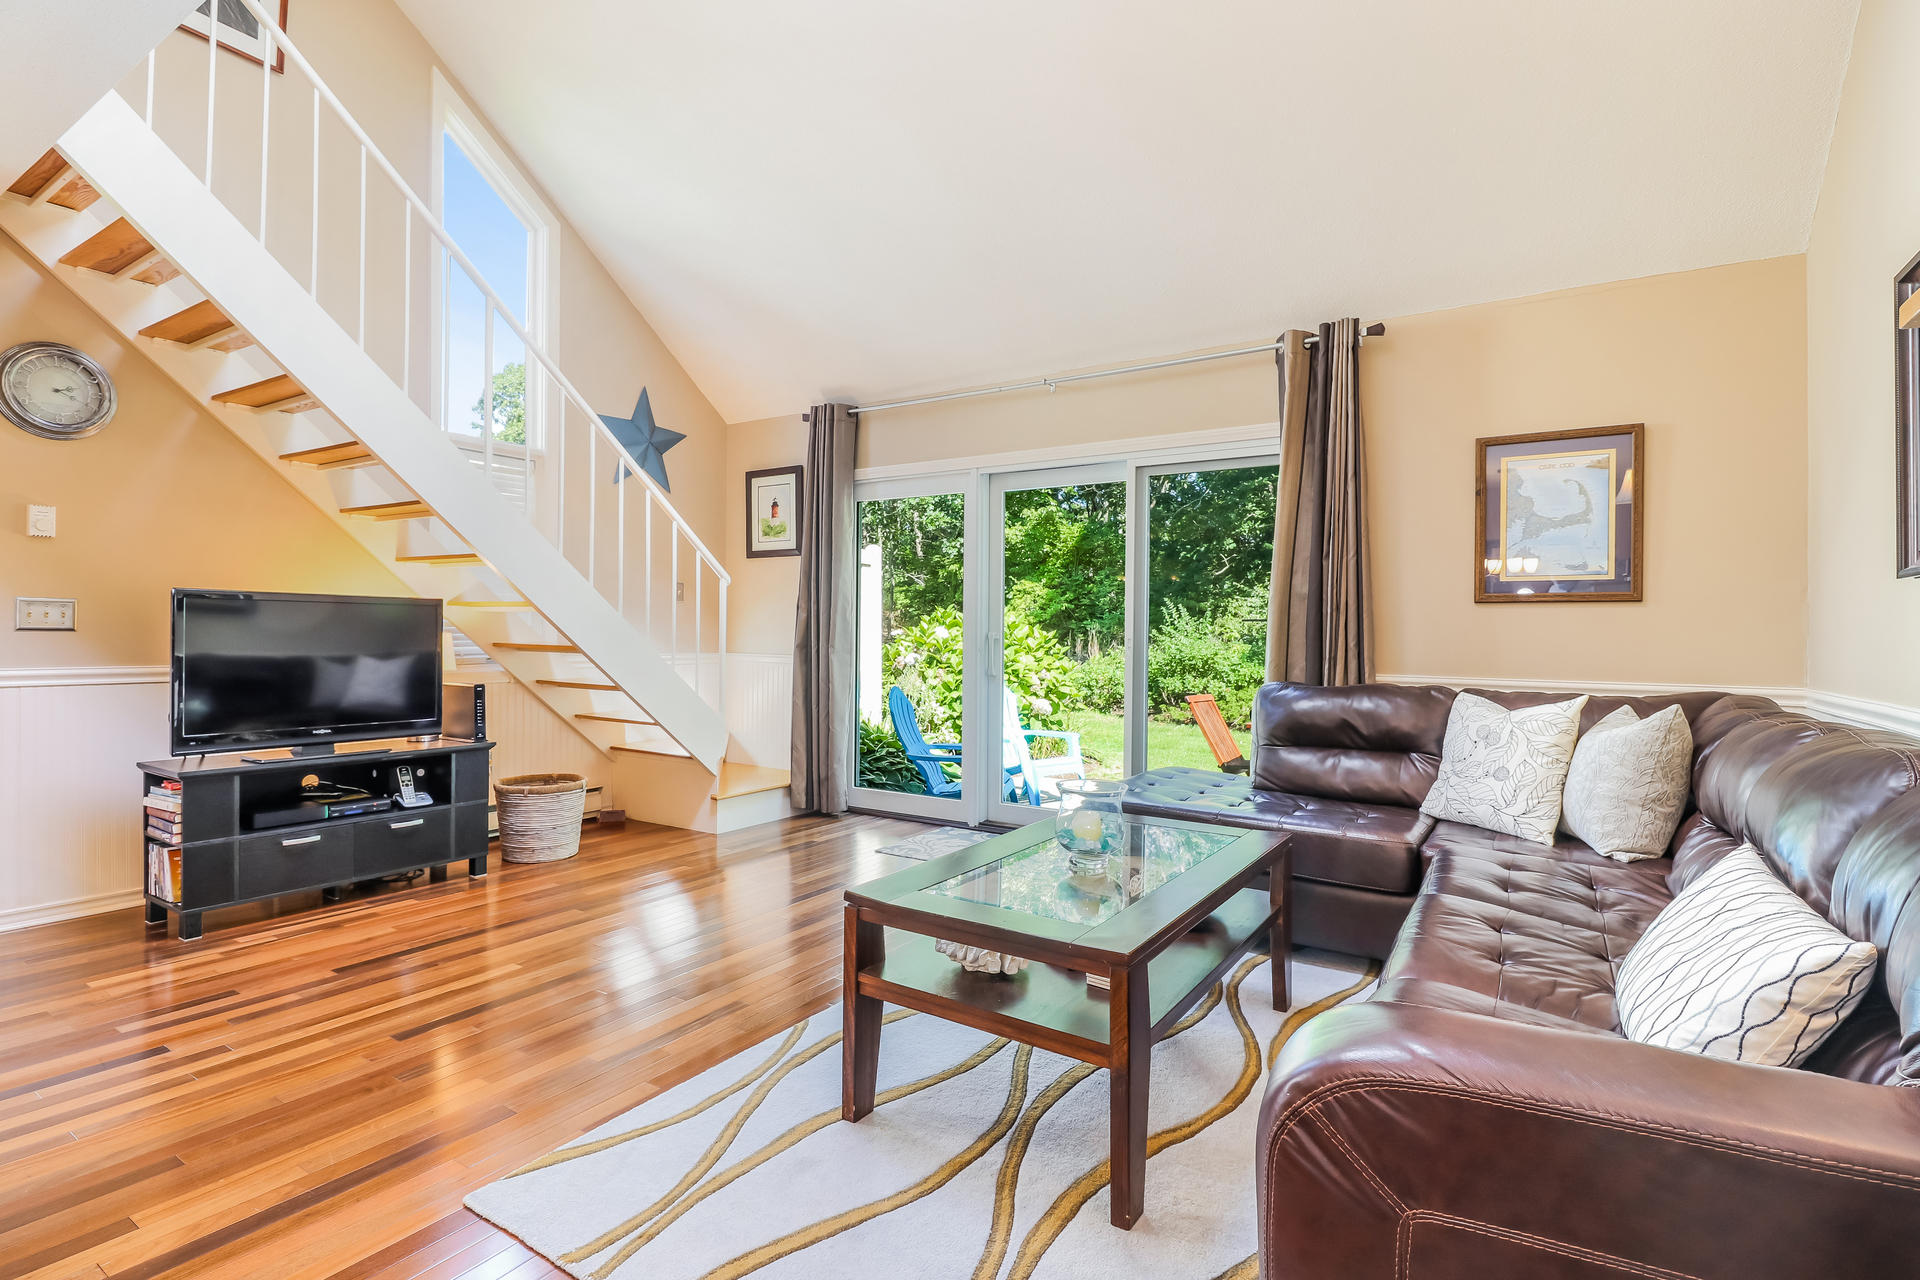 42 Howland Circle, Brewster MA, 02631 sales details